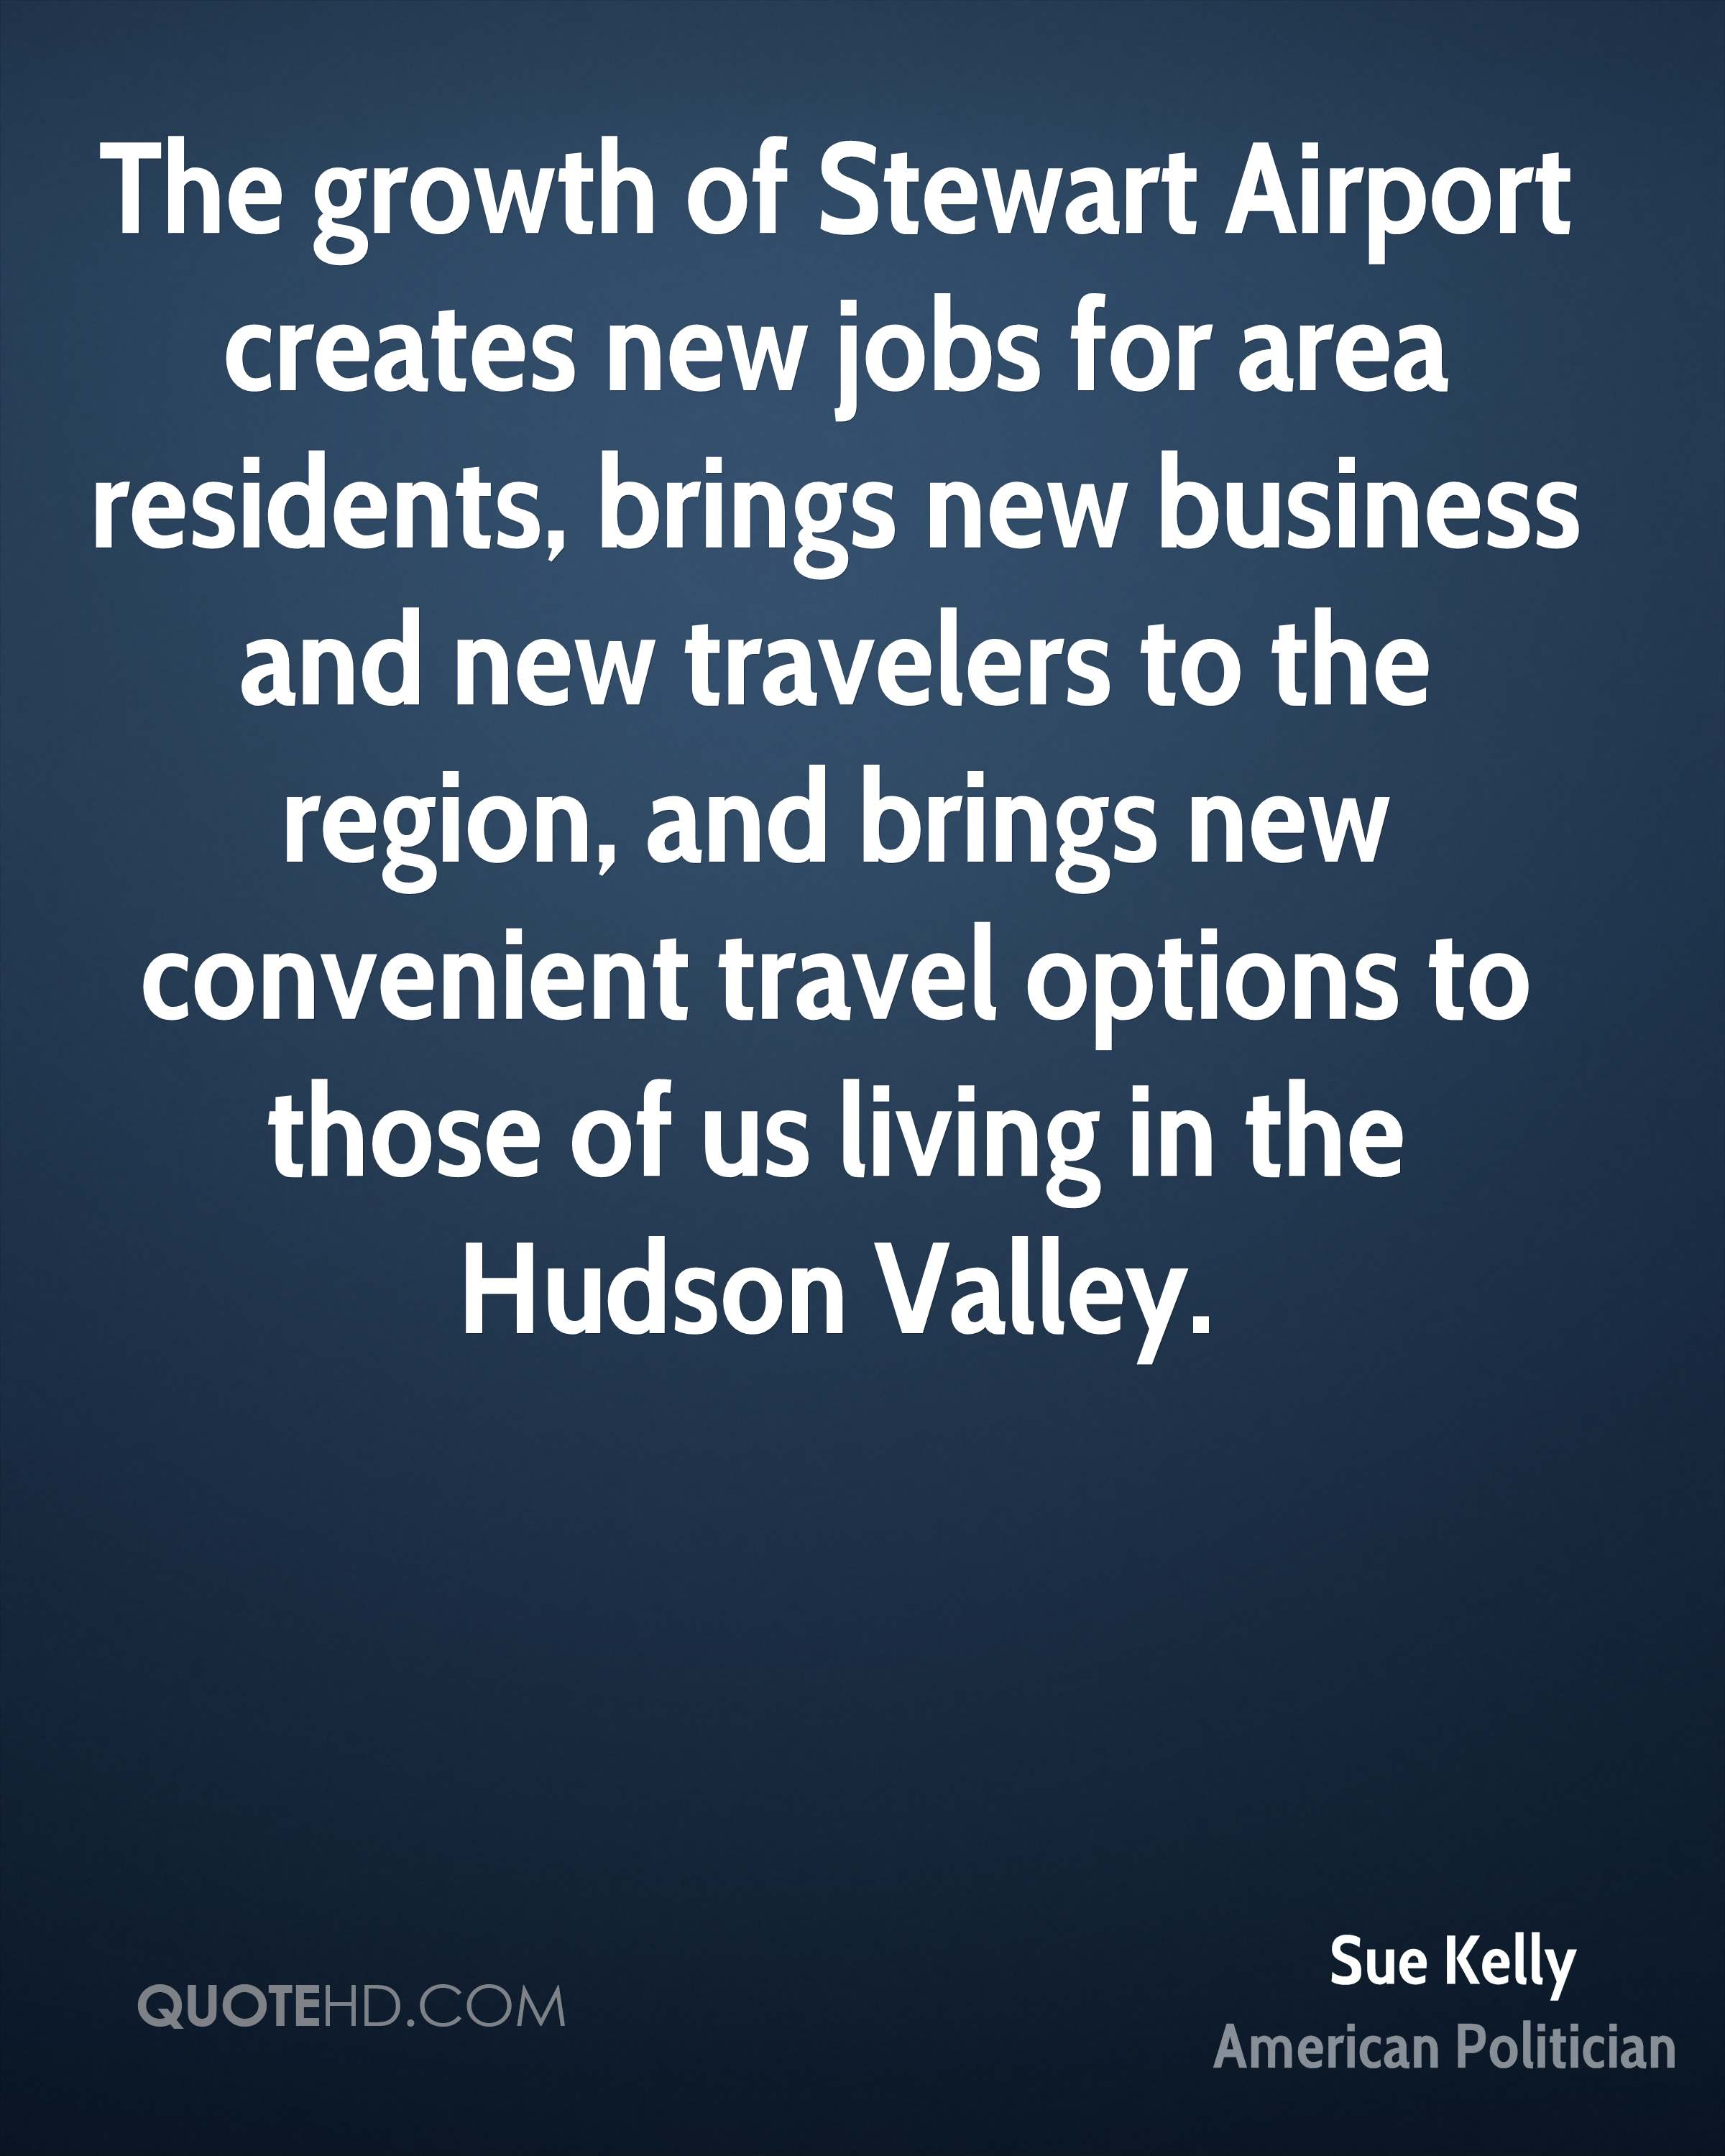 The growth of Stewart Airport creates new jobs for area residents, brings new business and new travelers to the region, and brings new convenient travel options to those of us living in the Hudson Valley.